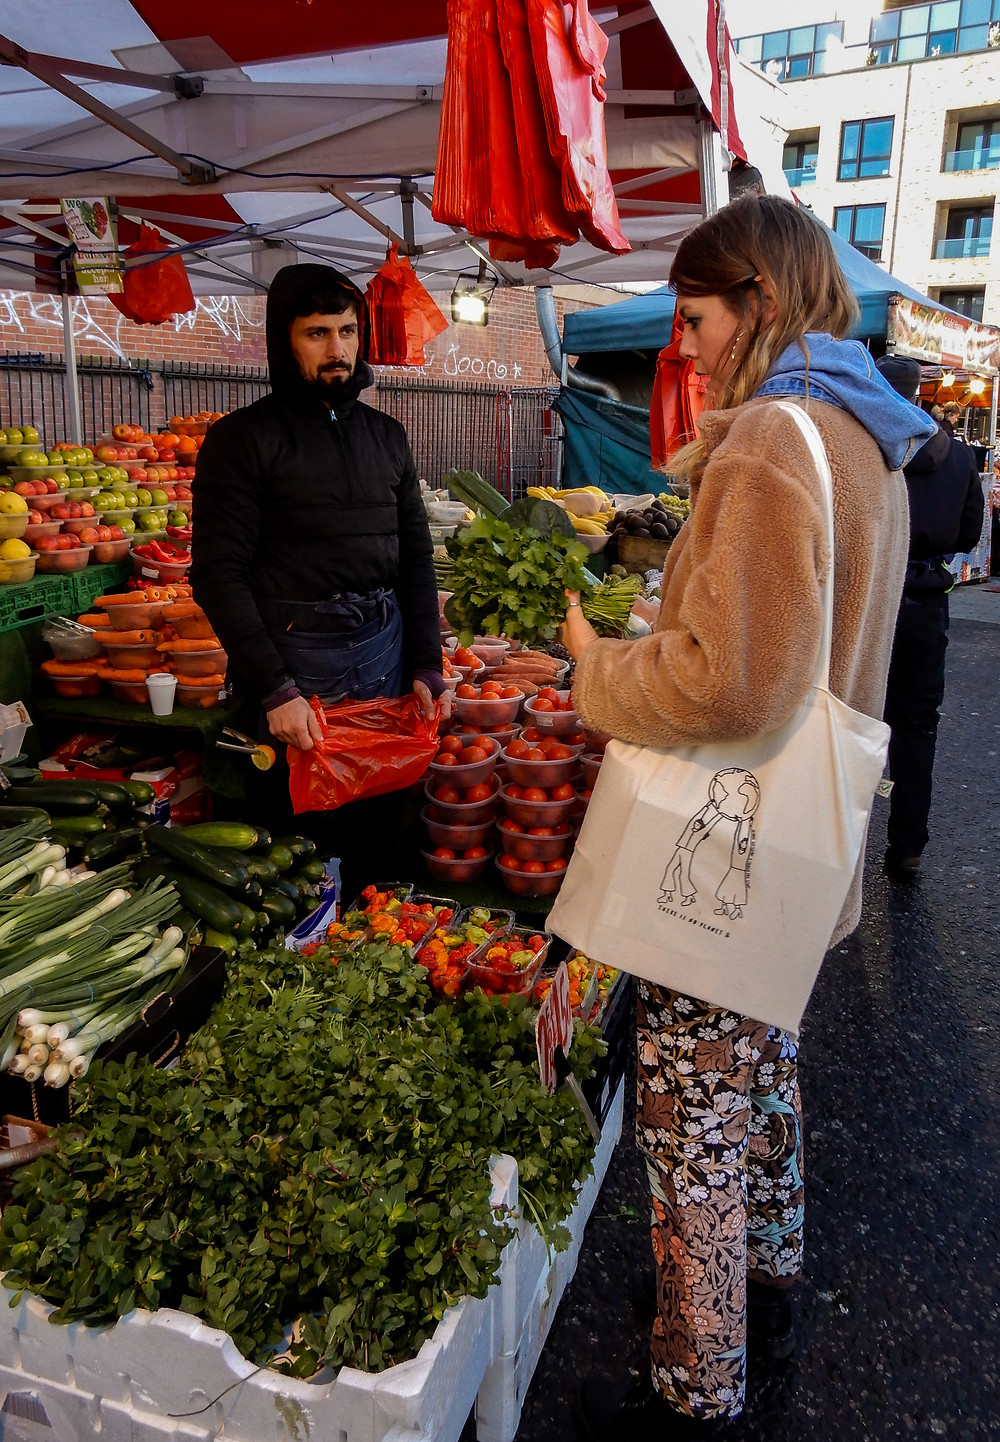 Shopping sustainably and vegan on a budget at Ridley Road Market | Vegan on a Budget 101 | Vegan guide to eating on a budget/cheaply | The Doepy Vegan